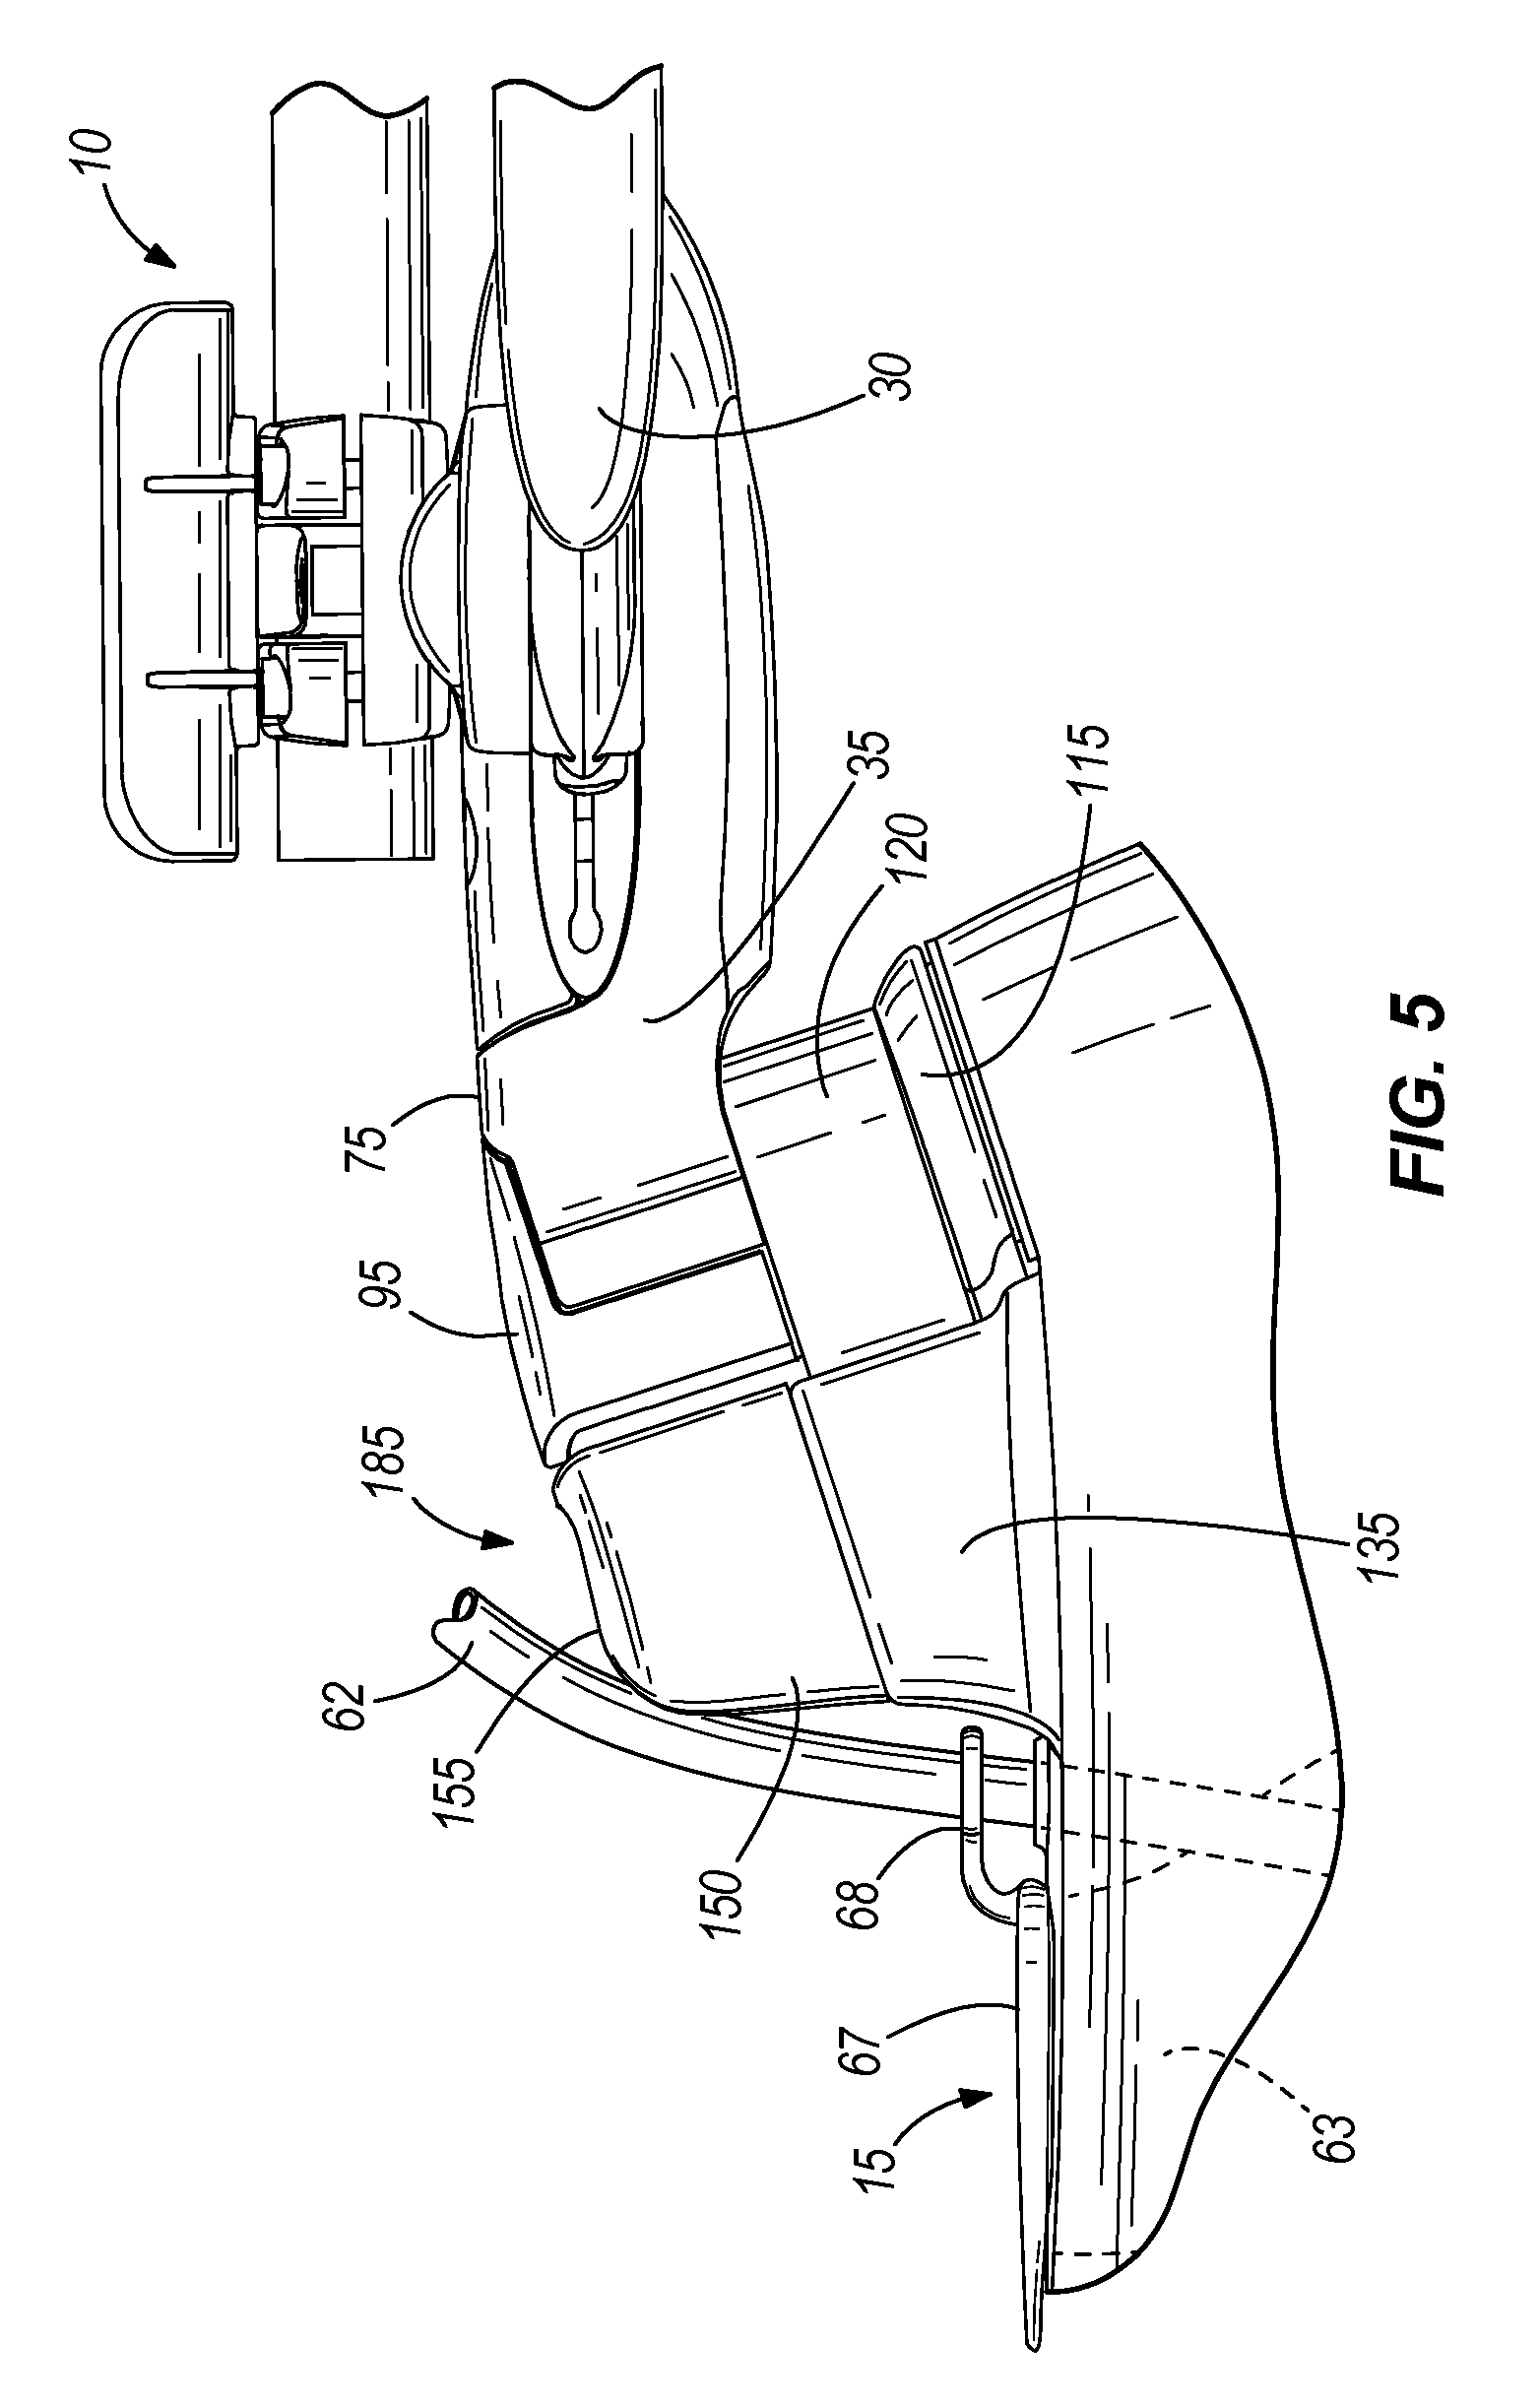 Patent Us8308179 Bicycle With Internal Storage System Google Patents Focus Engine Diagram Drawing